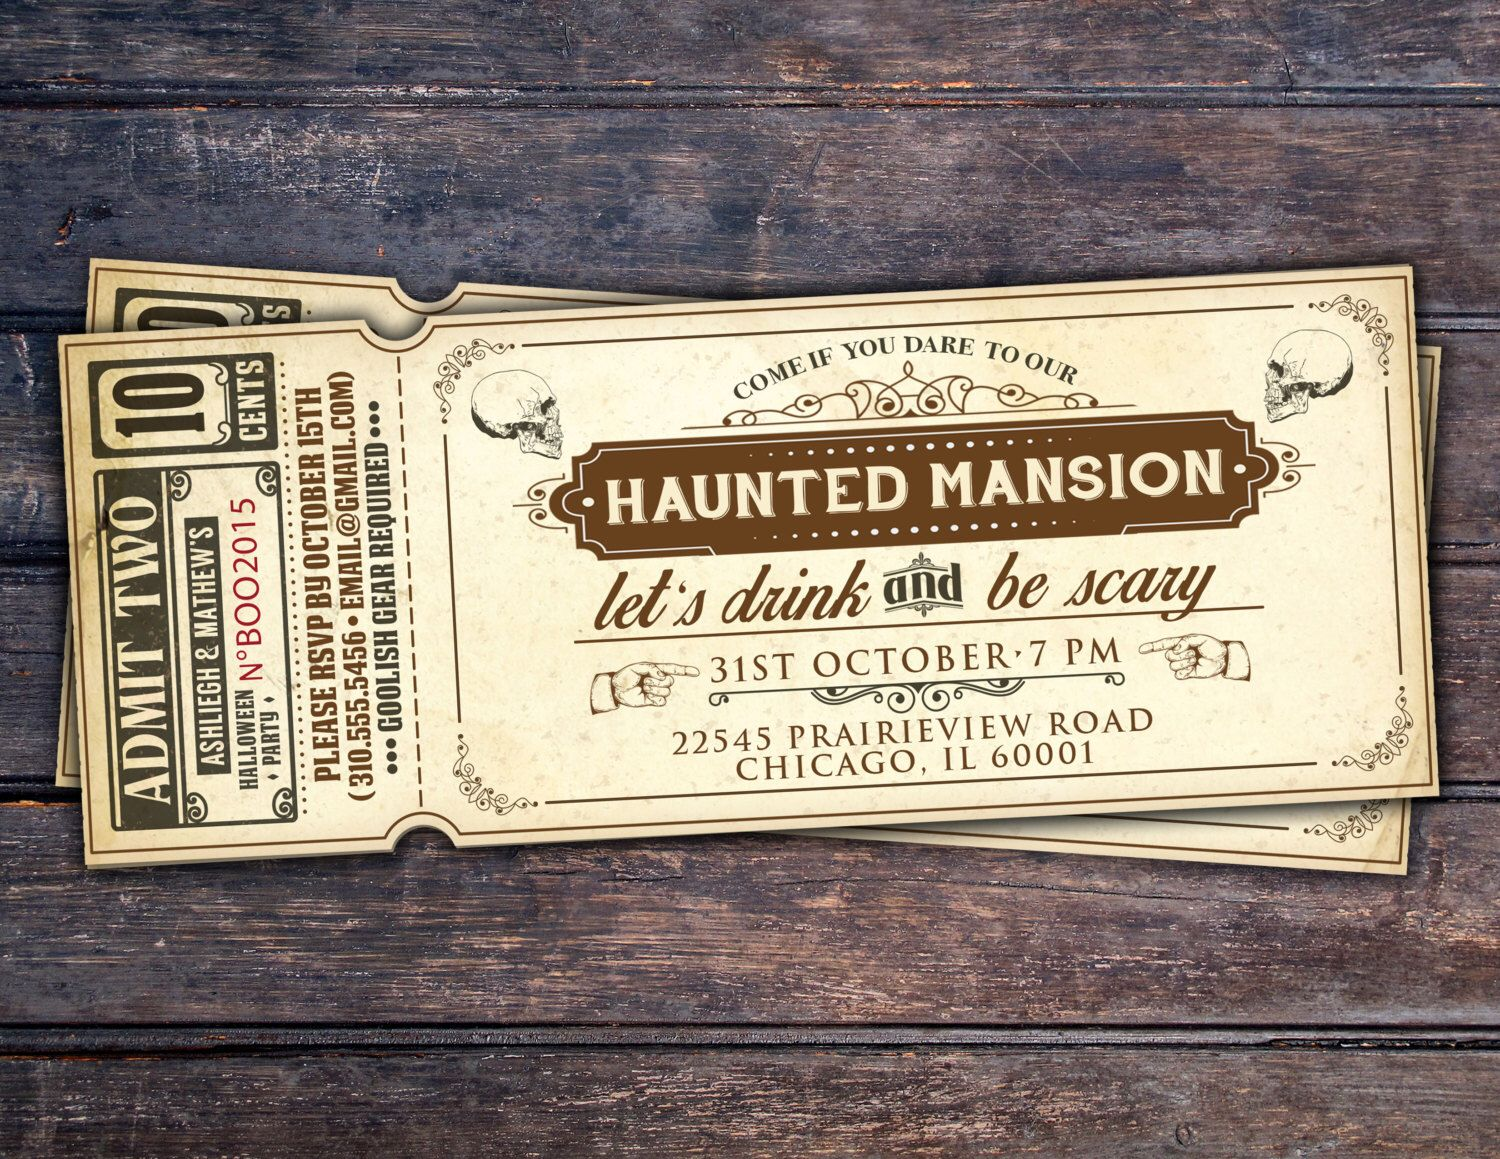 Halloween invite halloween party spooky halloween invitation halloween invite halloween party spooky halloween invitation halloween invites spooky invitations ticket invitation haunted house stopboris Choice Image